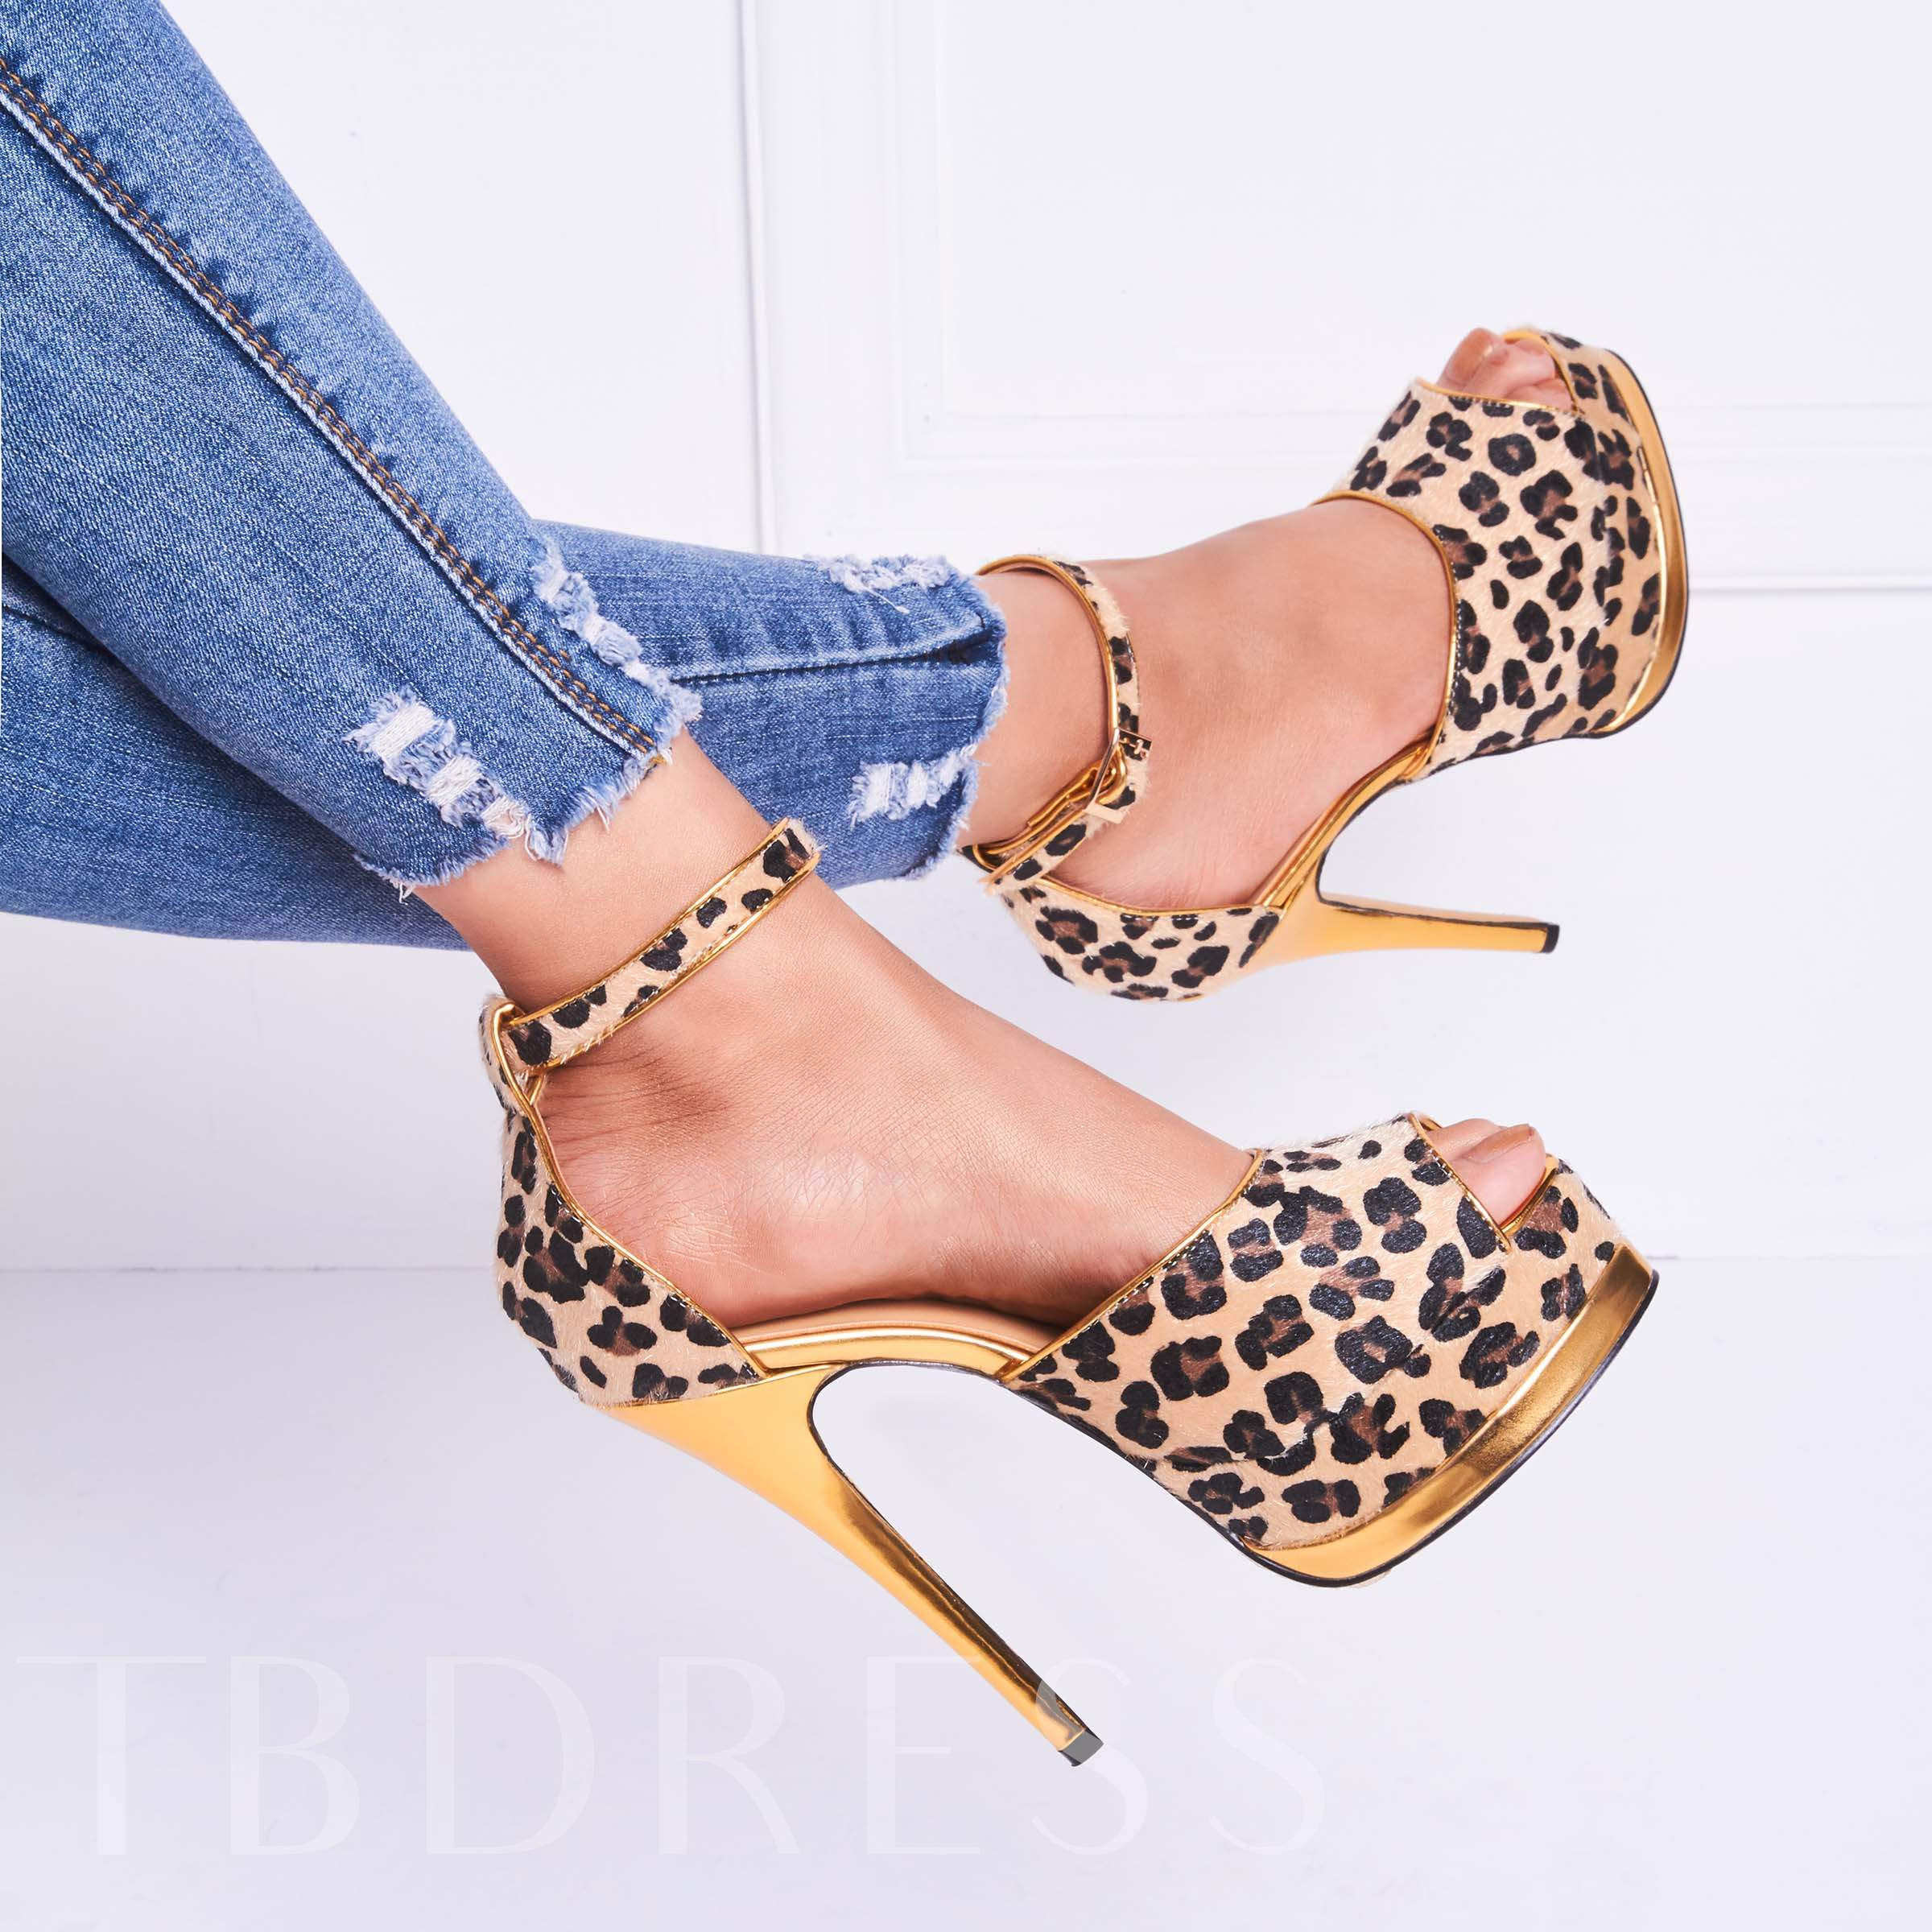 Peep Toe Platform Stiletto Heel Leopard Women's Pumps